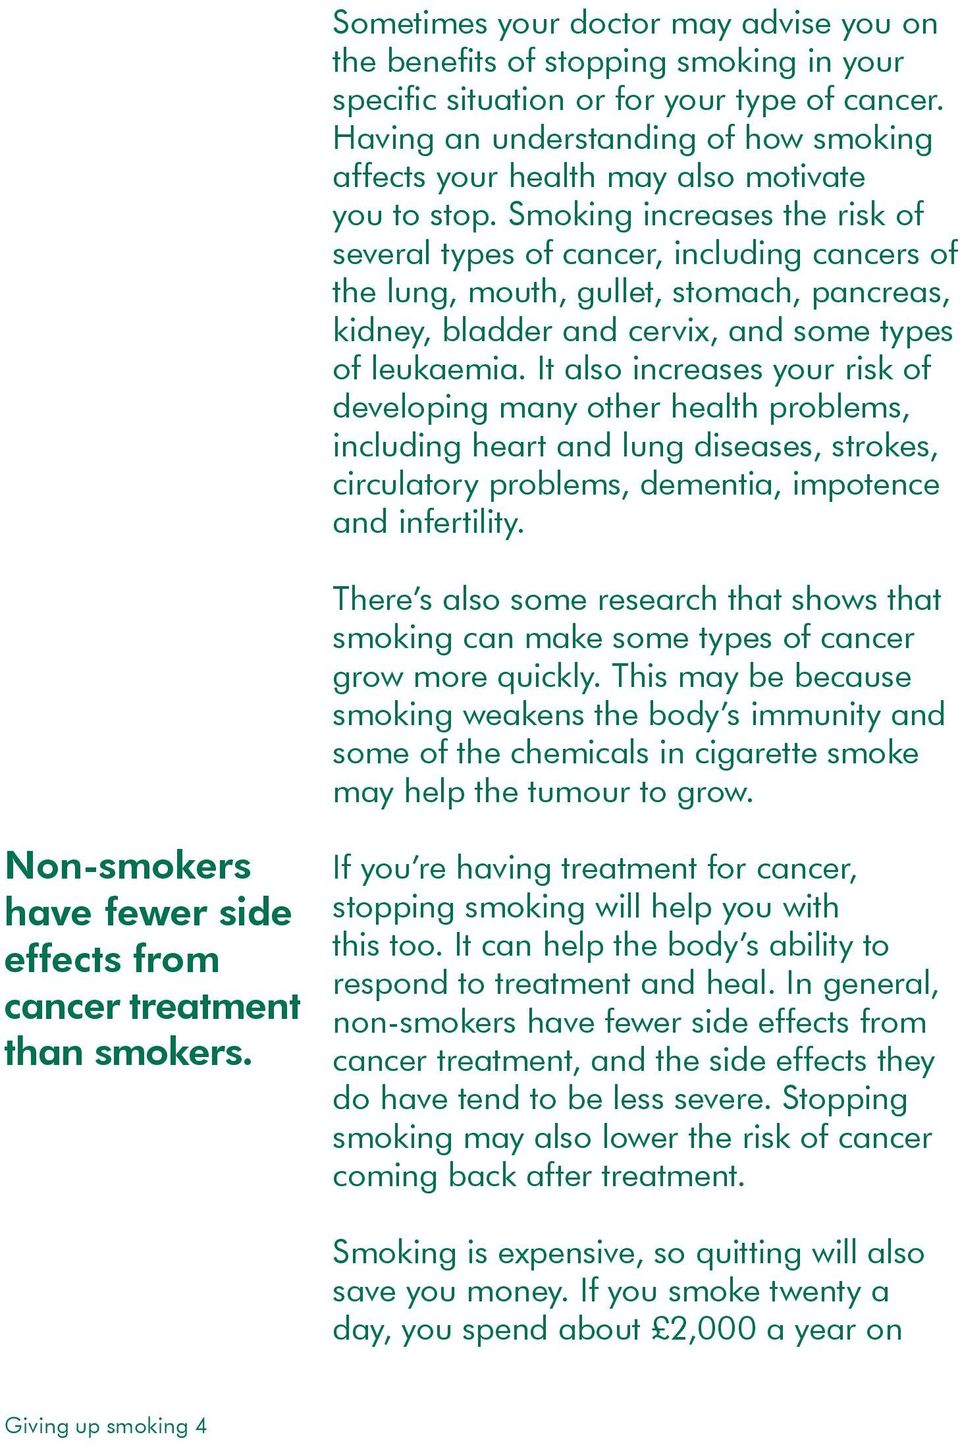 Smoking increases the risk of several types of cancer, including cancers of the lung, mouth, gullet, stomach, pancreas, kidney, bladder and cervix, and some types of leukaemia.